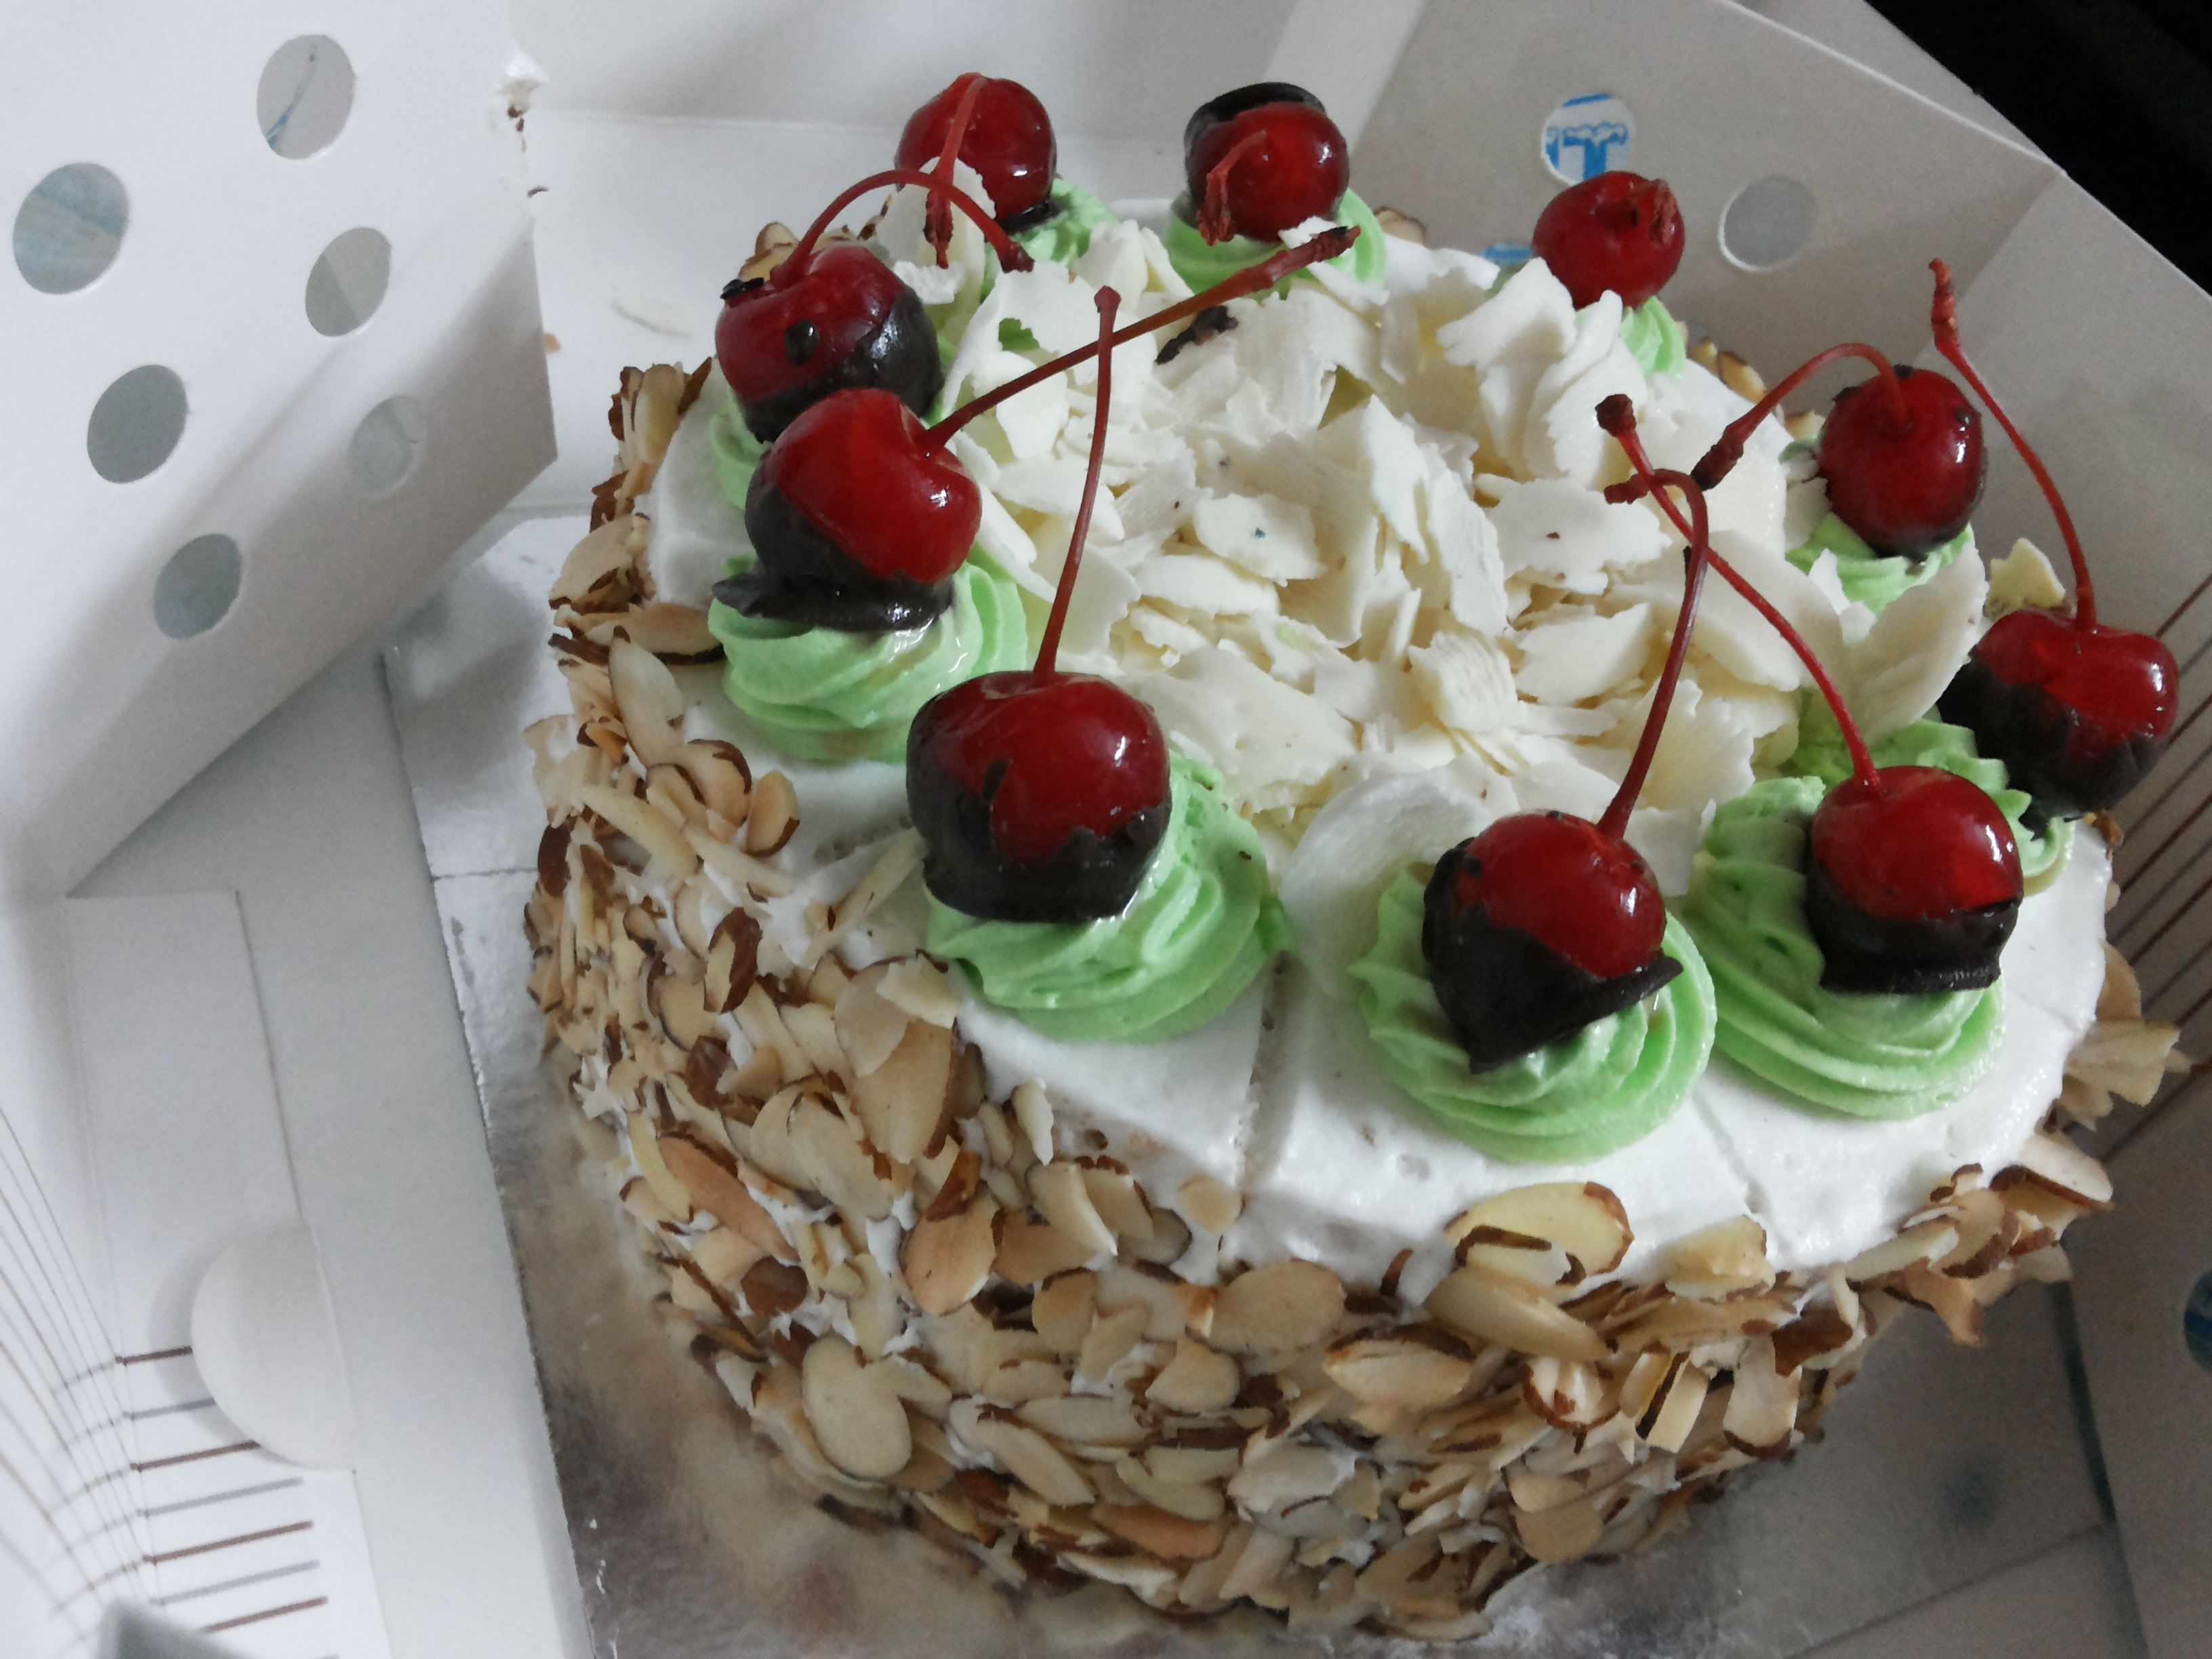 Ice cream cake home delivery in chennai